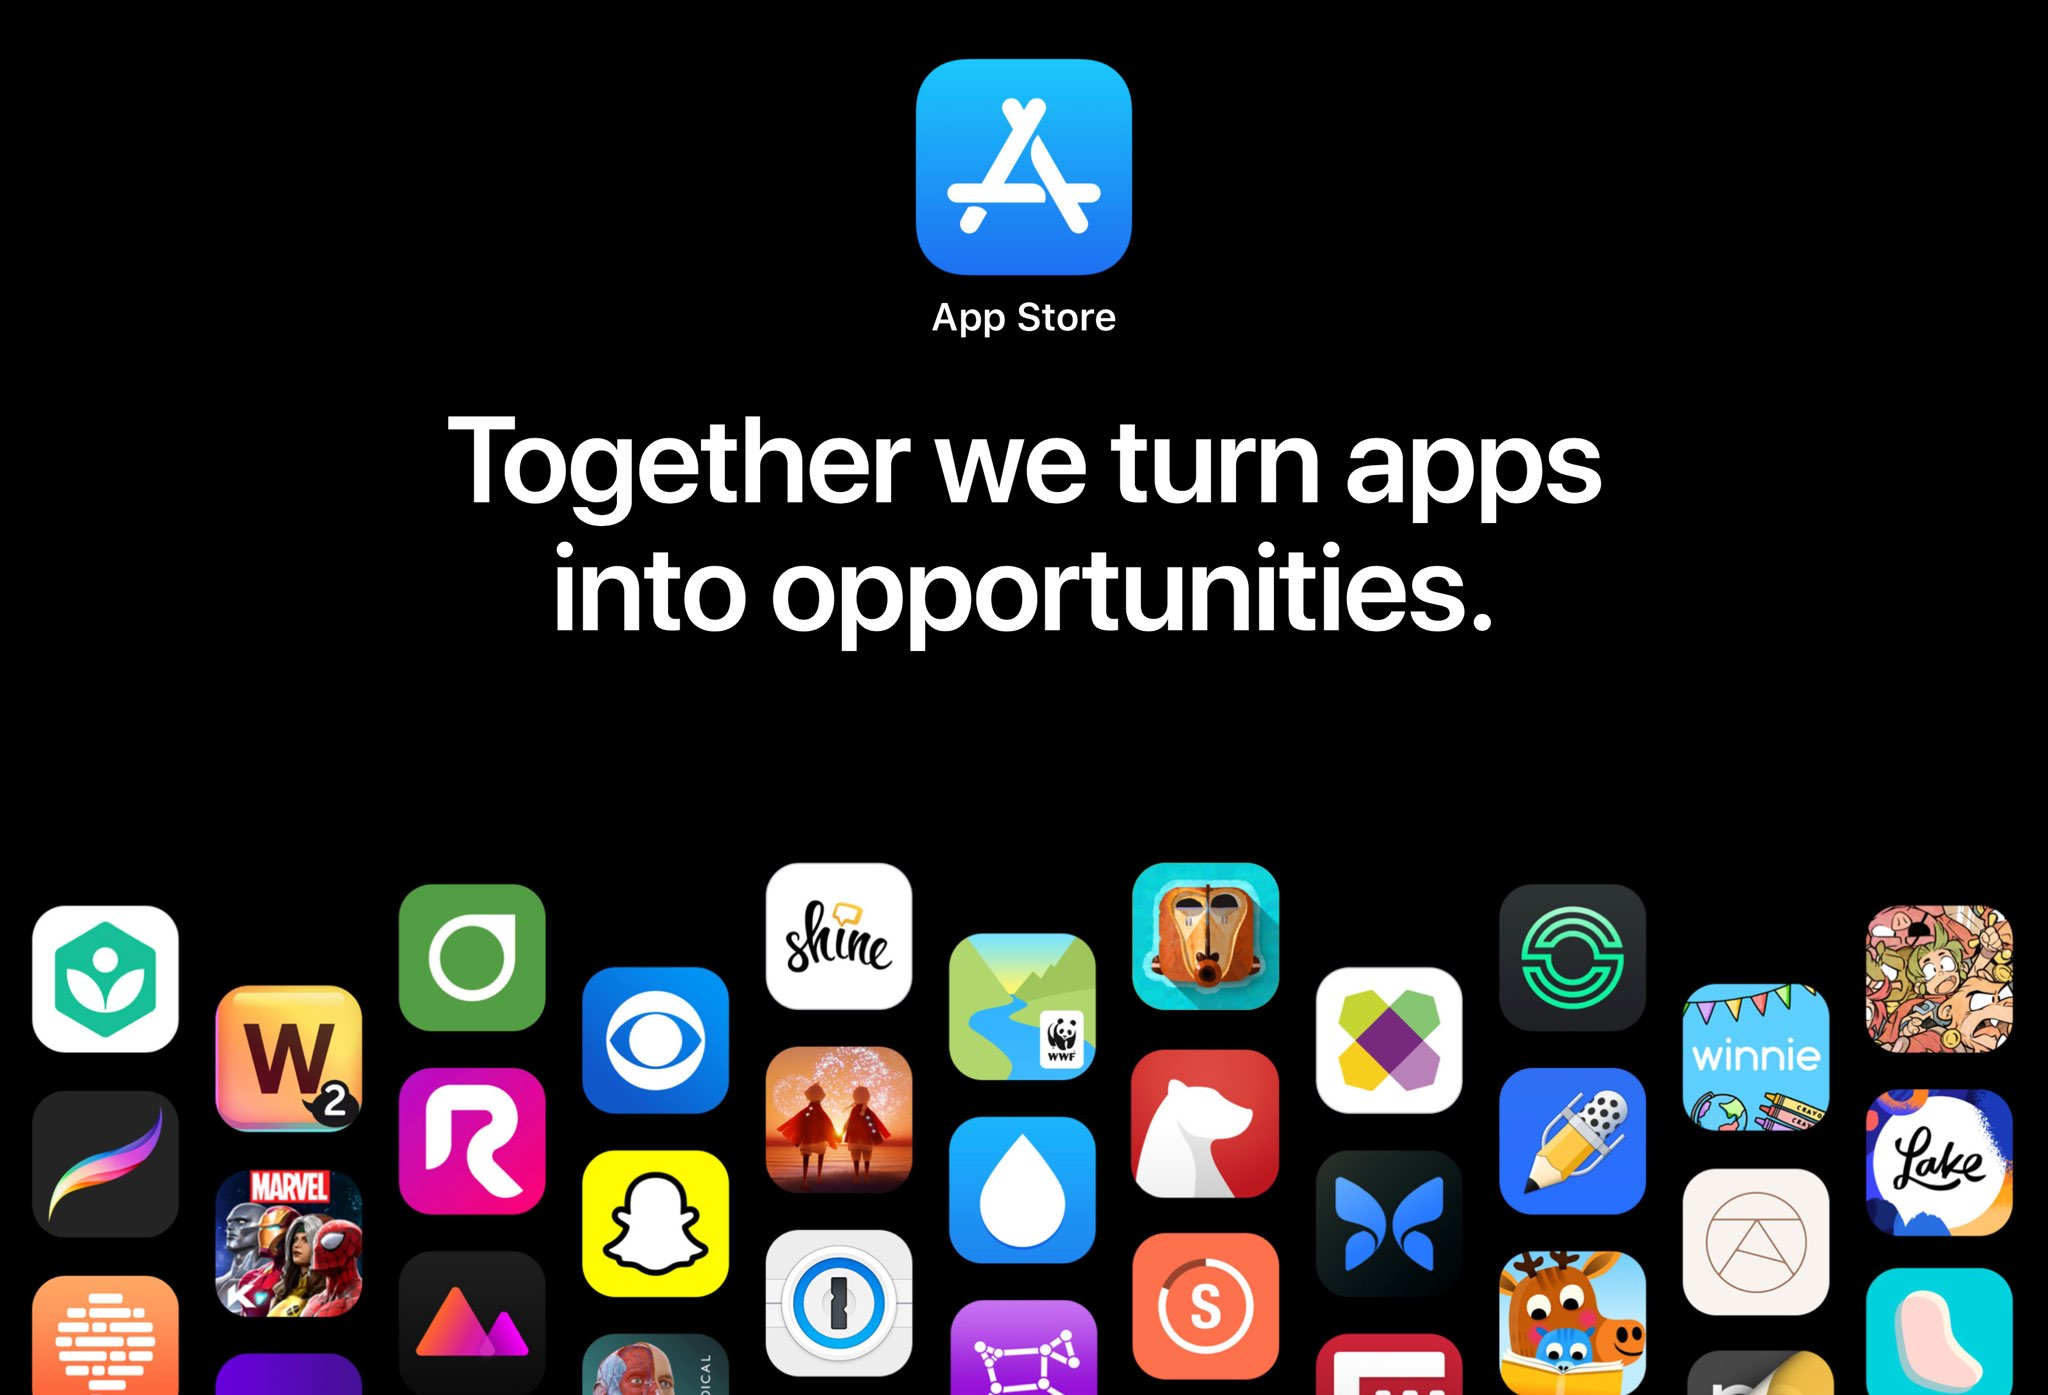 A screenshot of the Apple website showing a section dedicated to promoting the App Store.